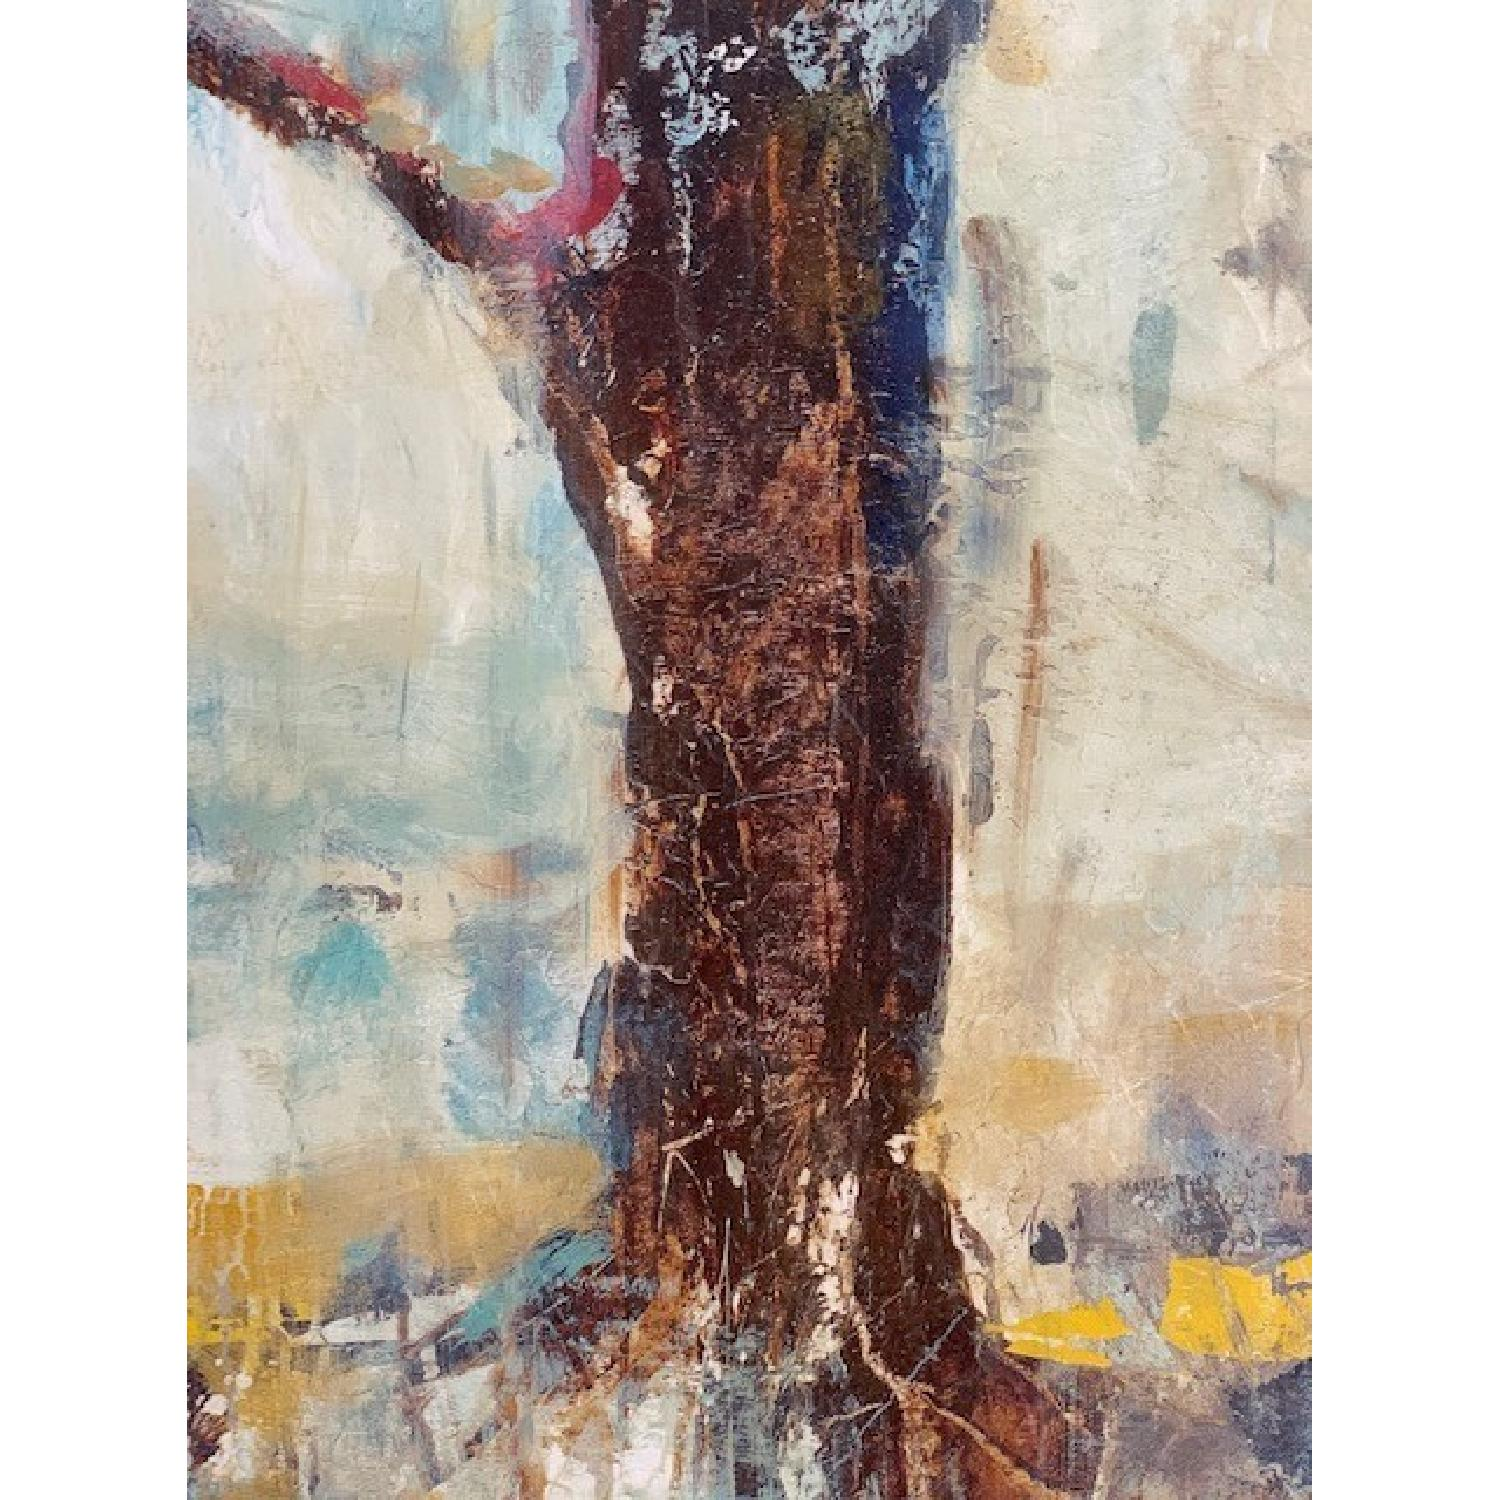 Ballard Designs Tree Giclee Cotton Canvas on Wood Frame - image-3